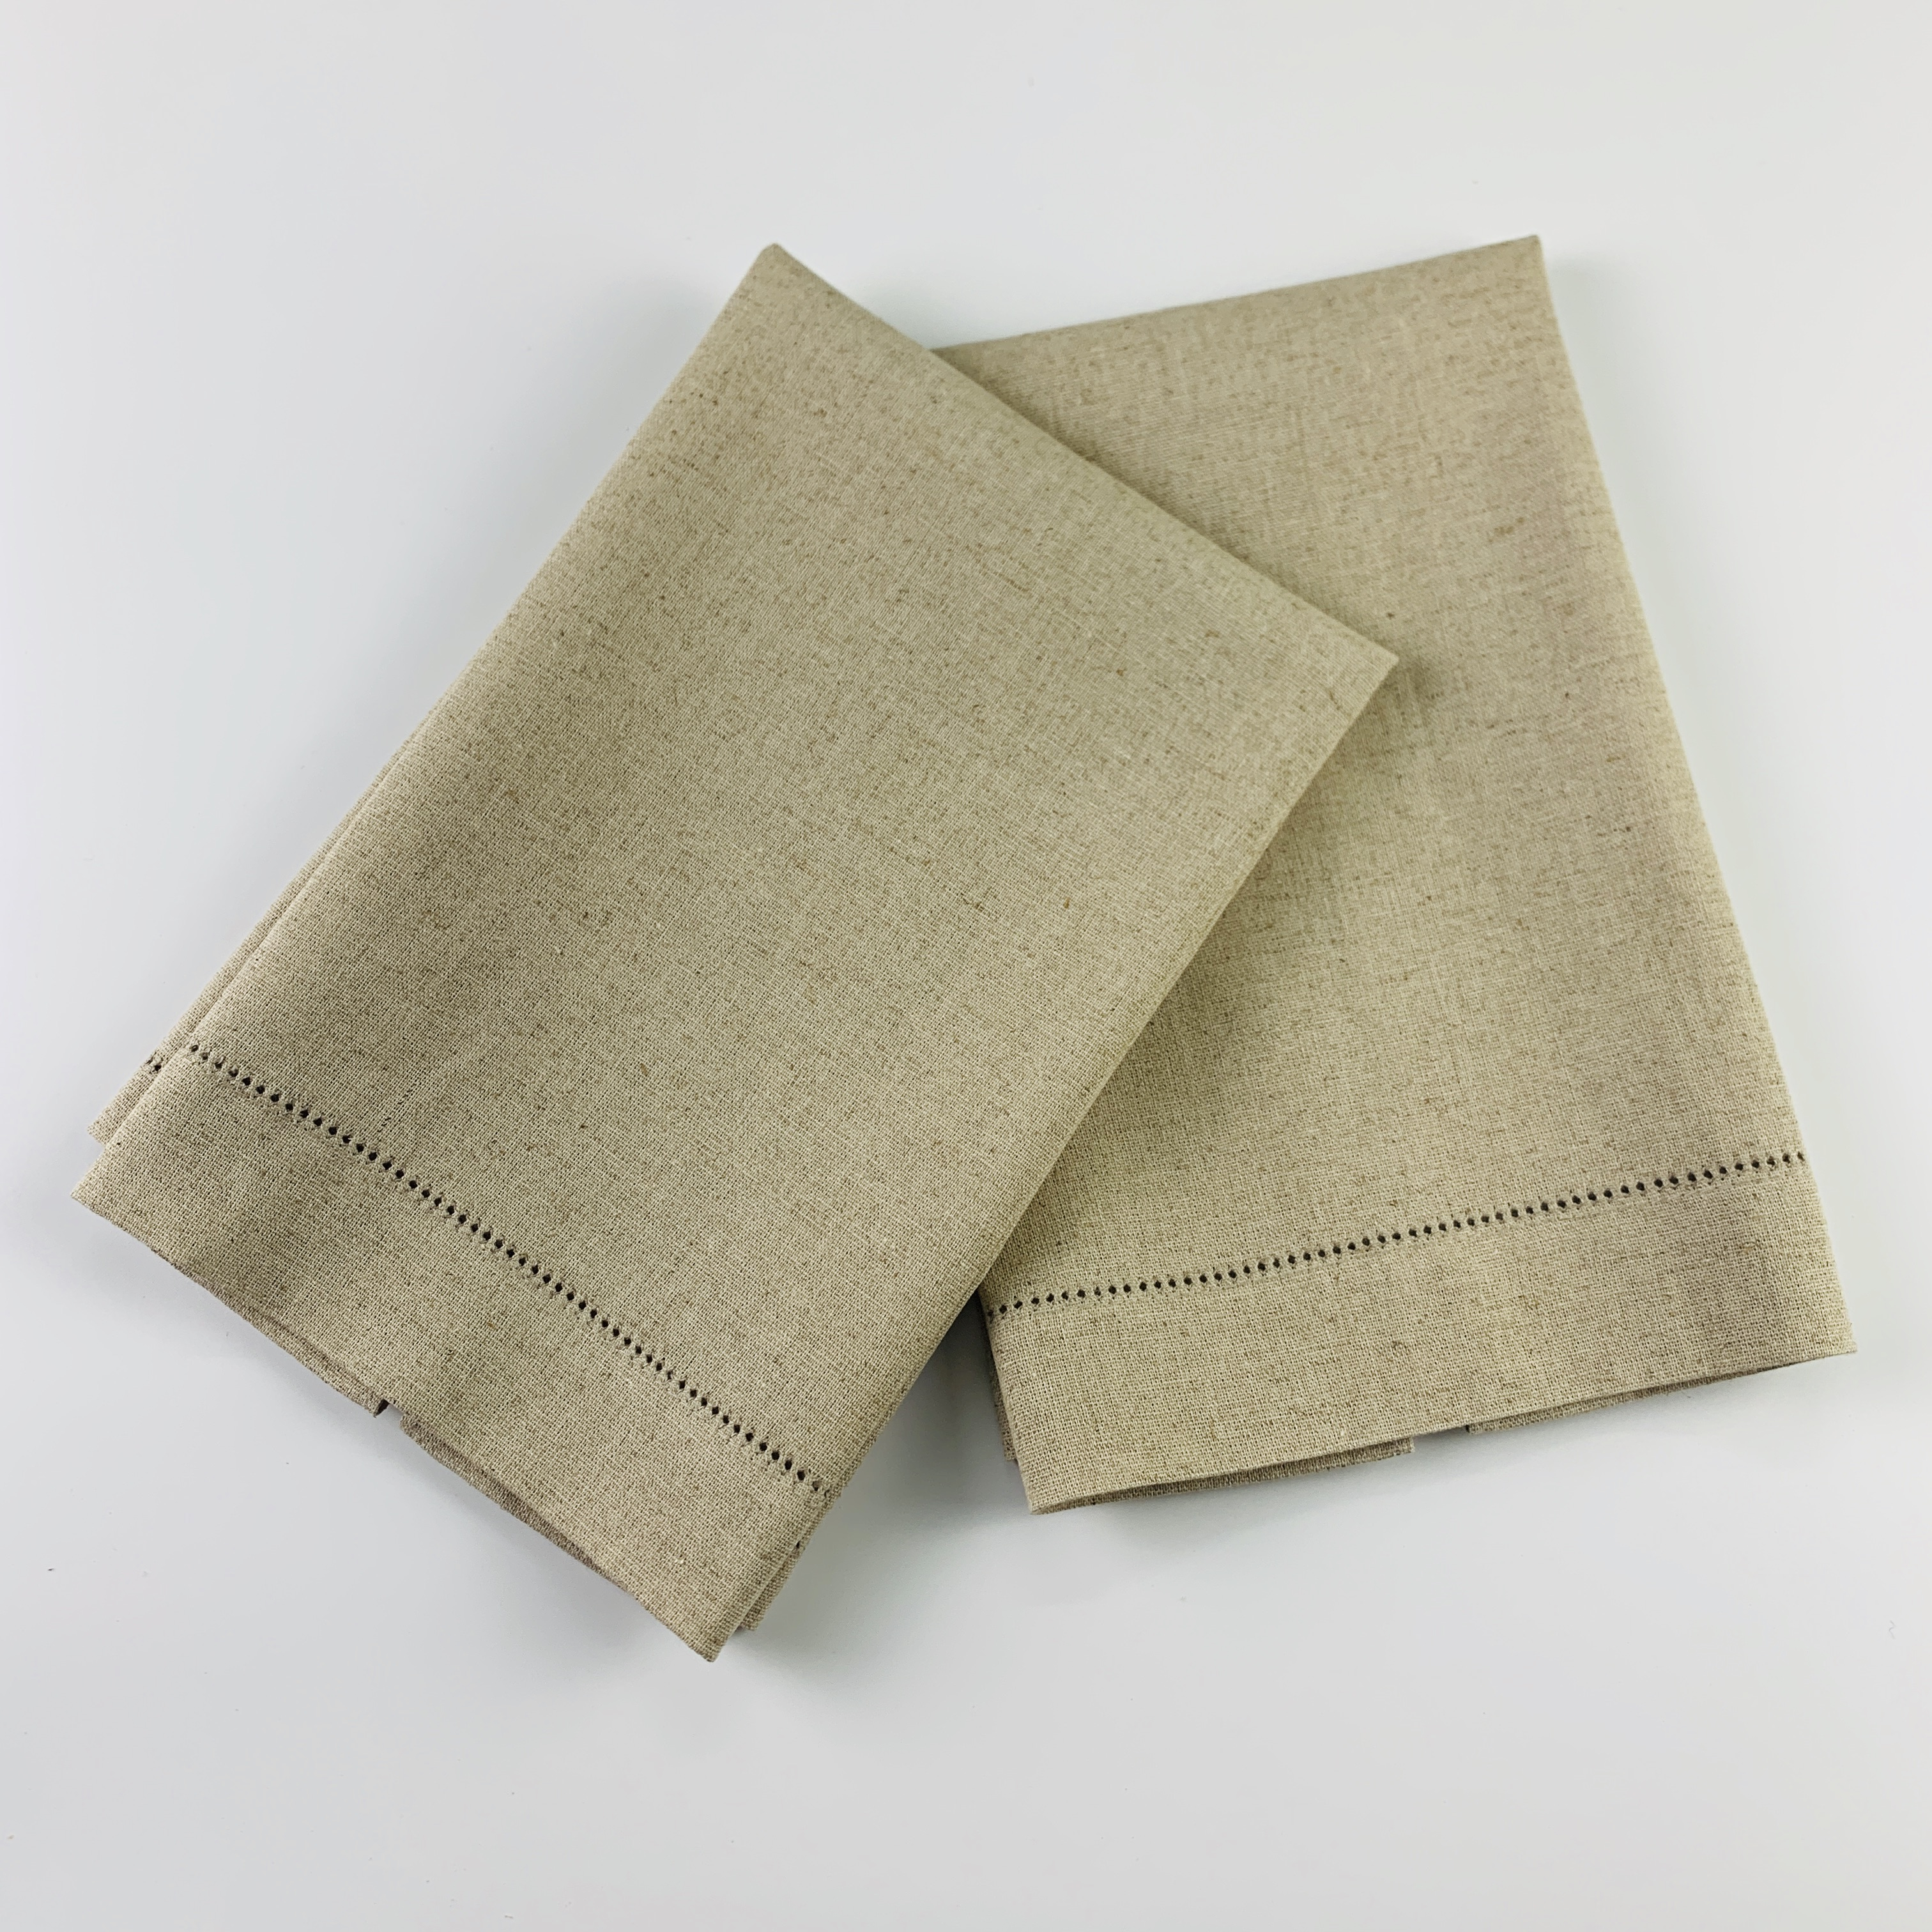 12 PCS Fashion Guest Towels With Embroidered Hemstitch Border Oatmeal Color Linen Hand Towel Make Any Guest Feel Welcome 14